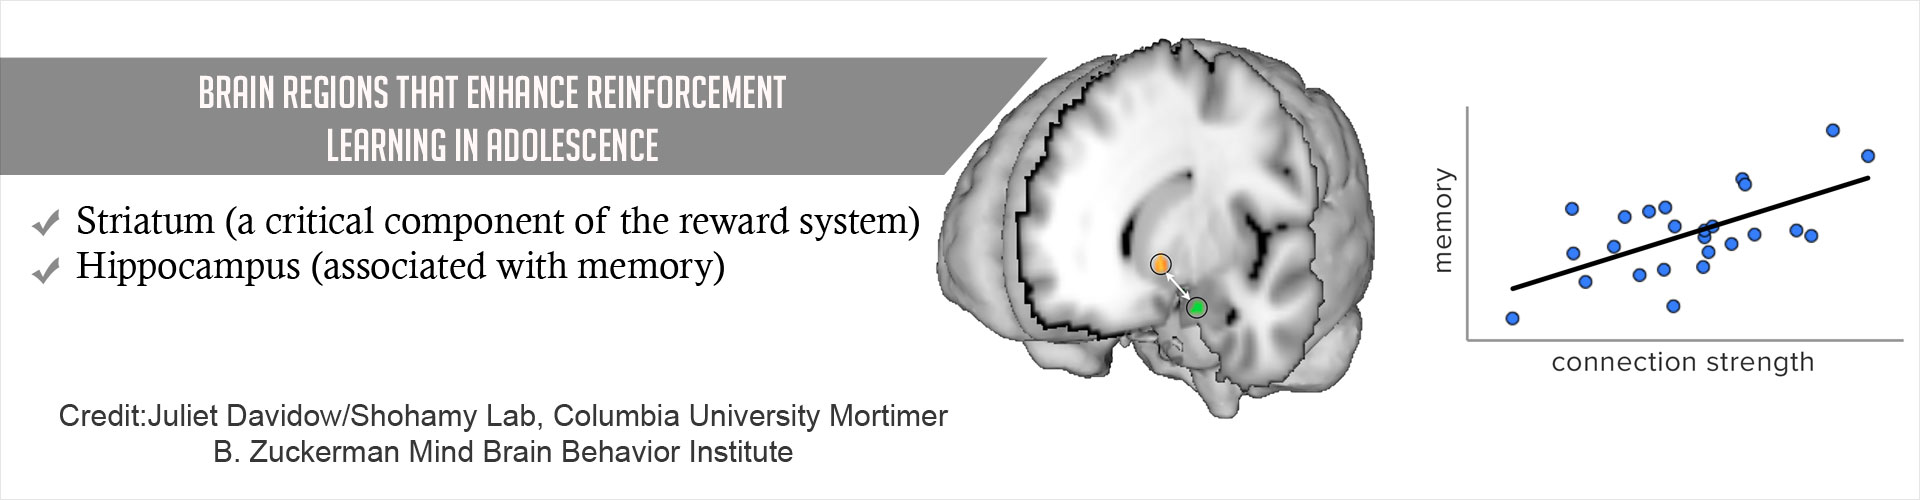 Two Brain Regions are Associated With Learning Circuit in Adolescents